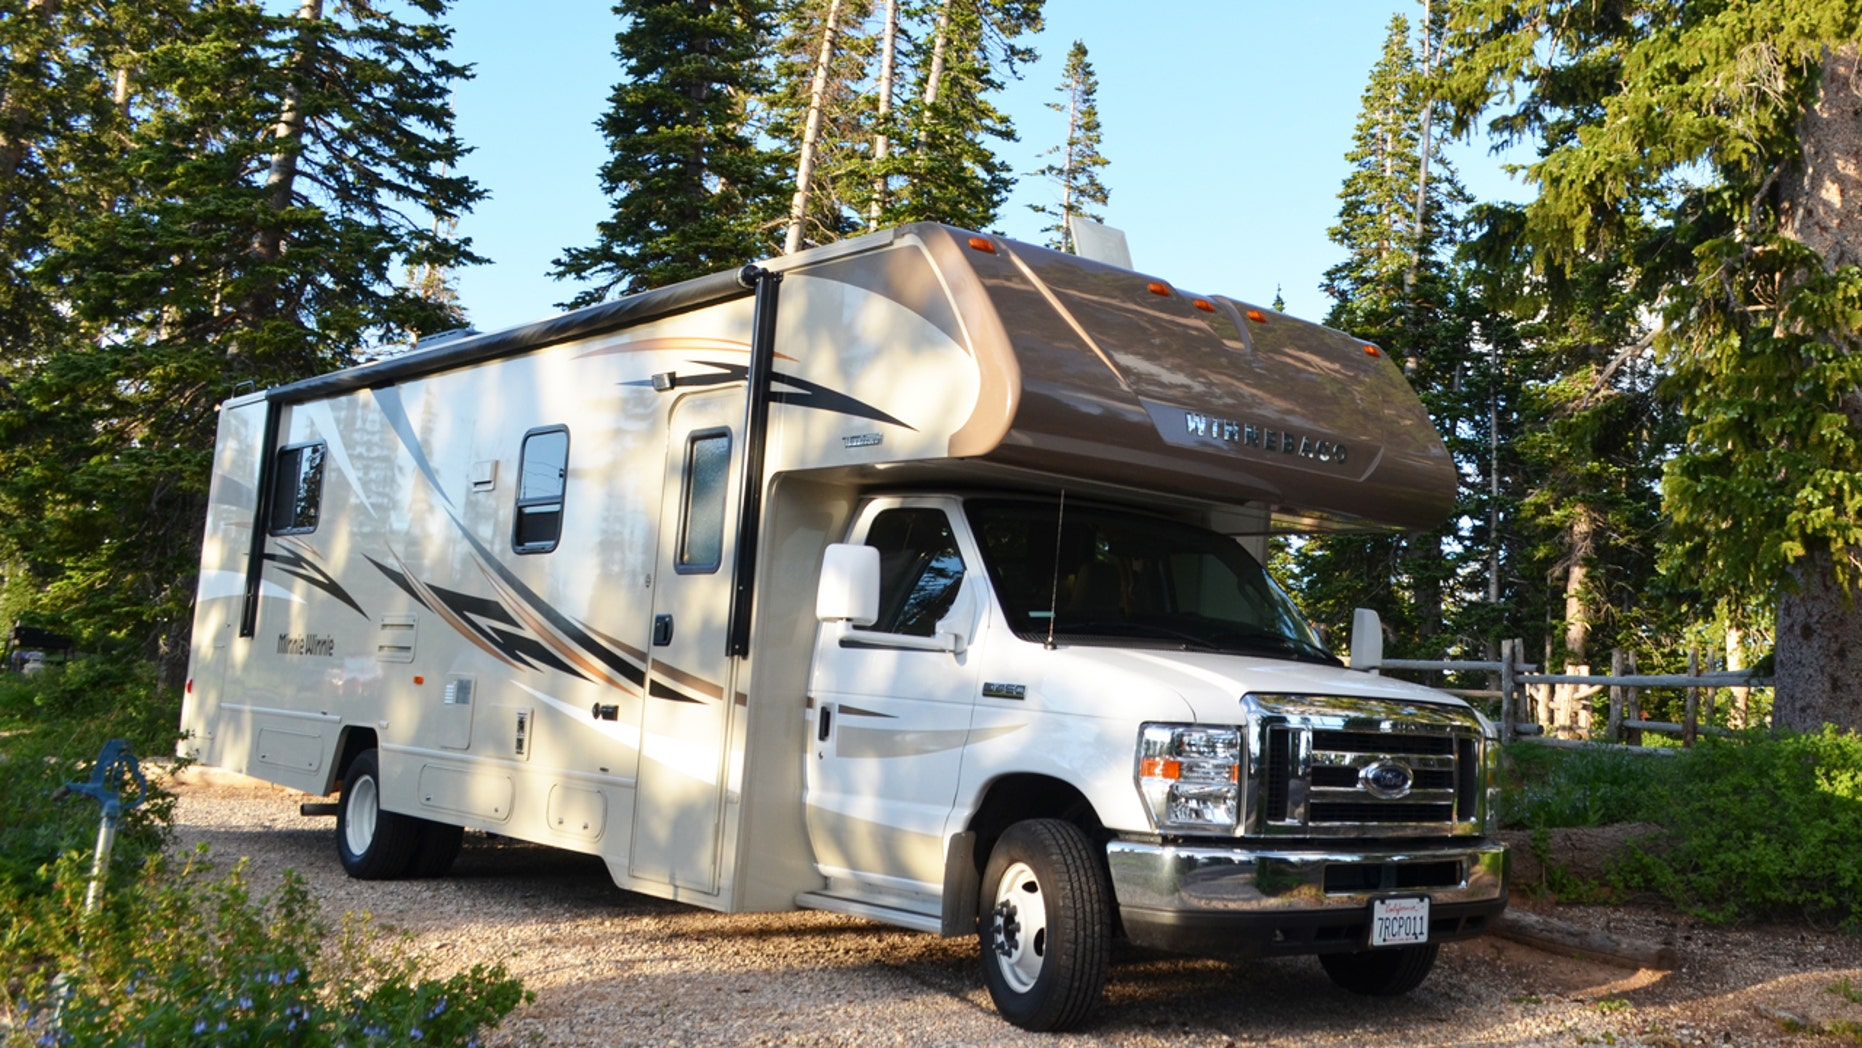 Our home for the week. The RV campground in Cedar Breaks National Monument.